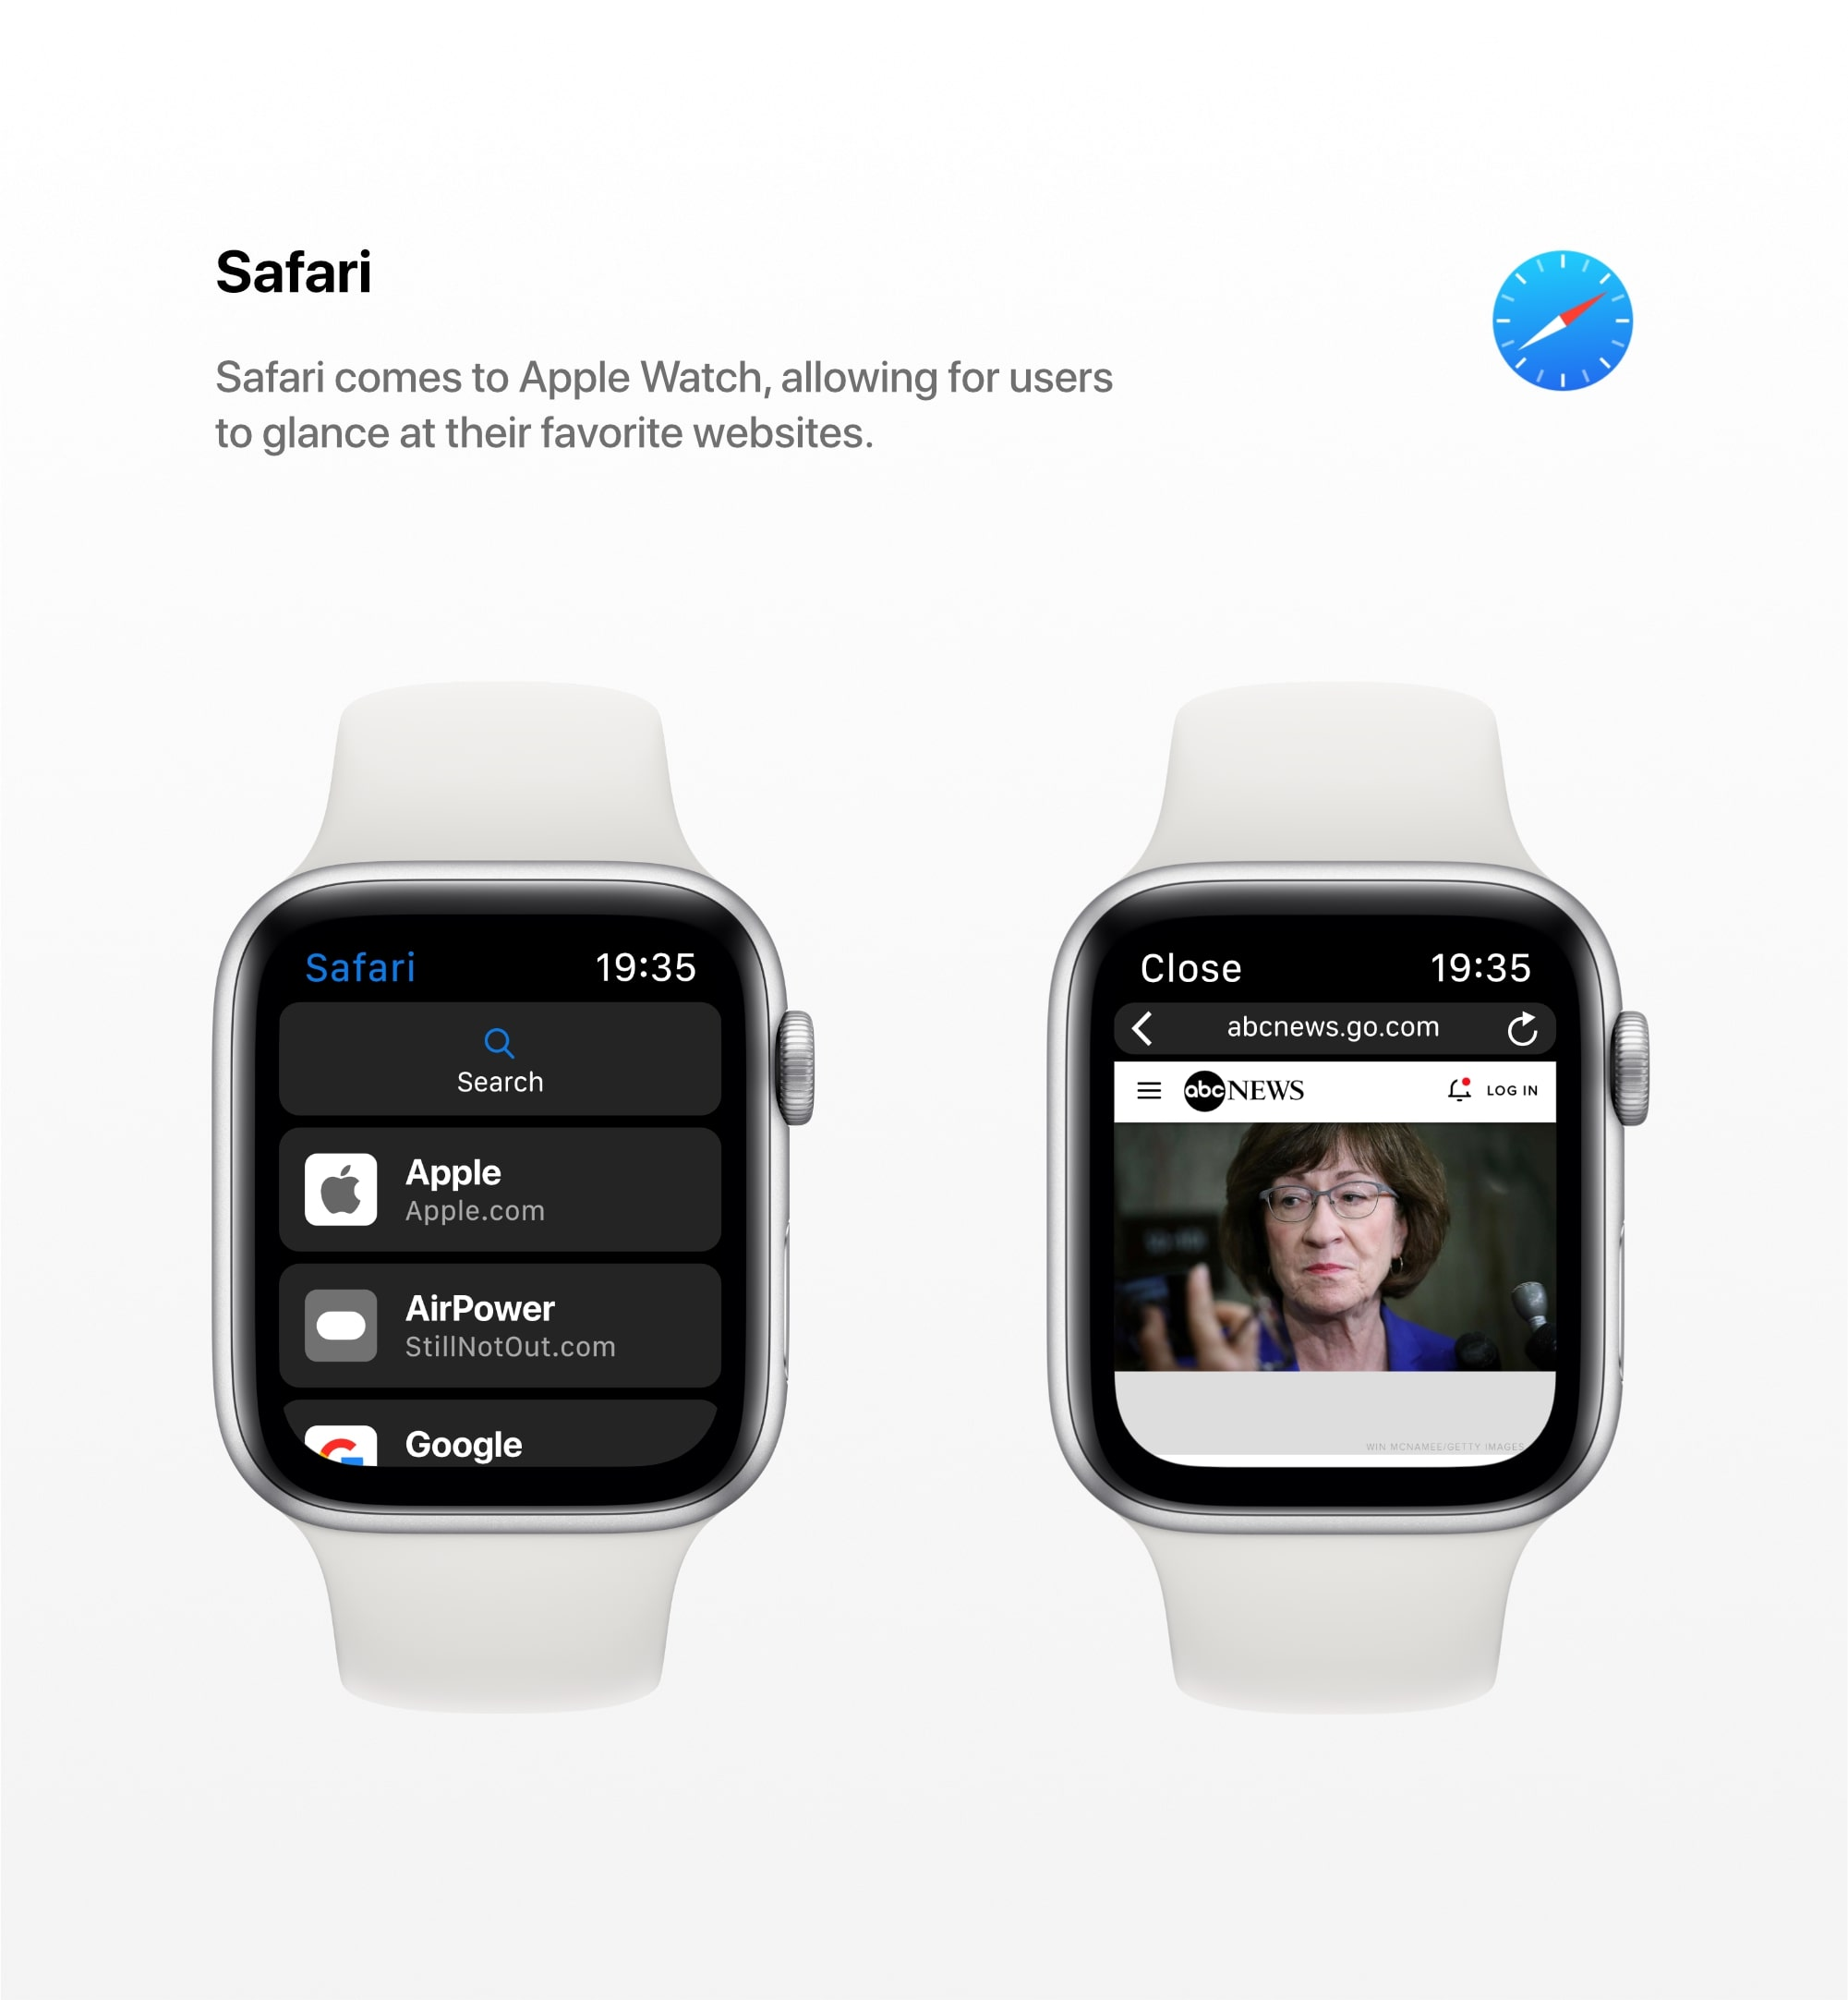 Apple Watch Watch Os 6 Concept 25